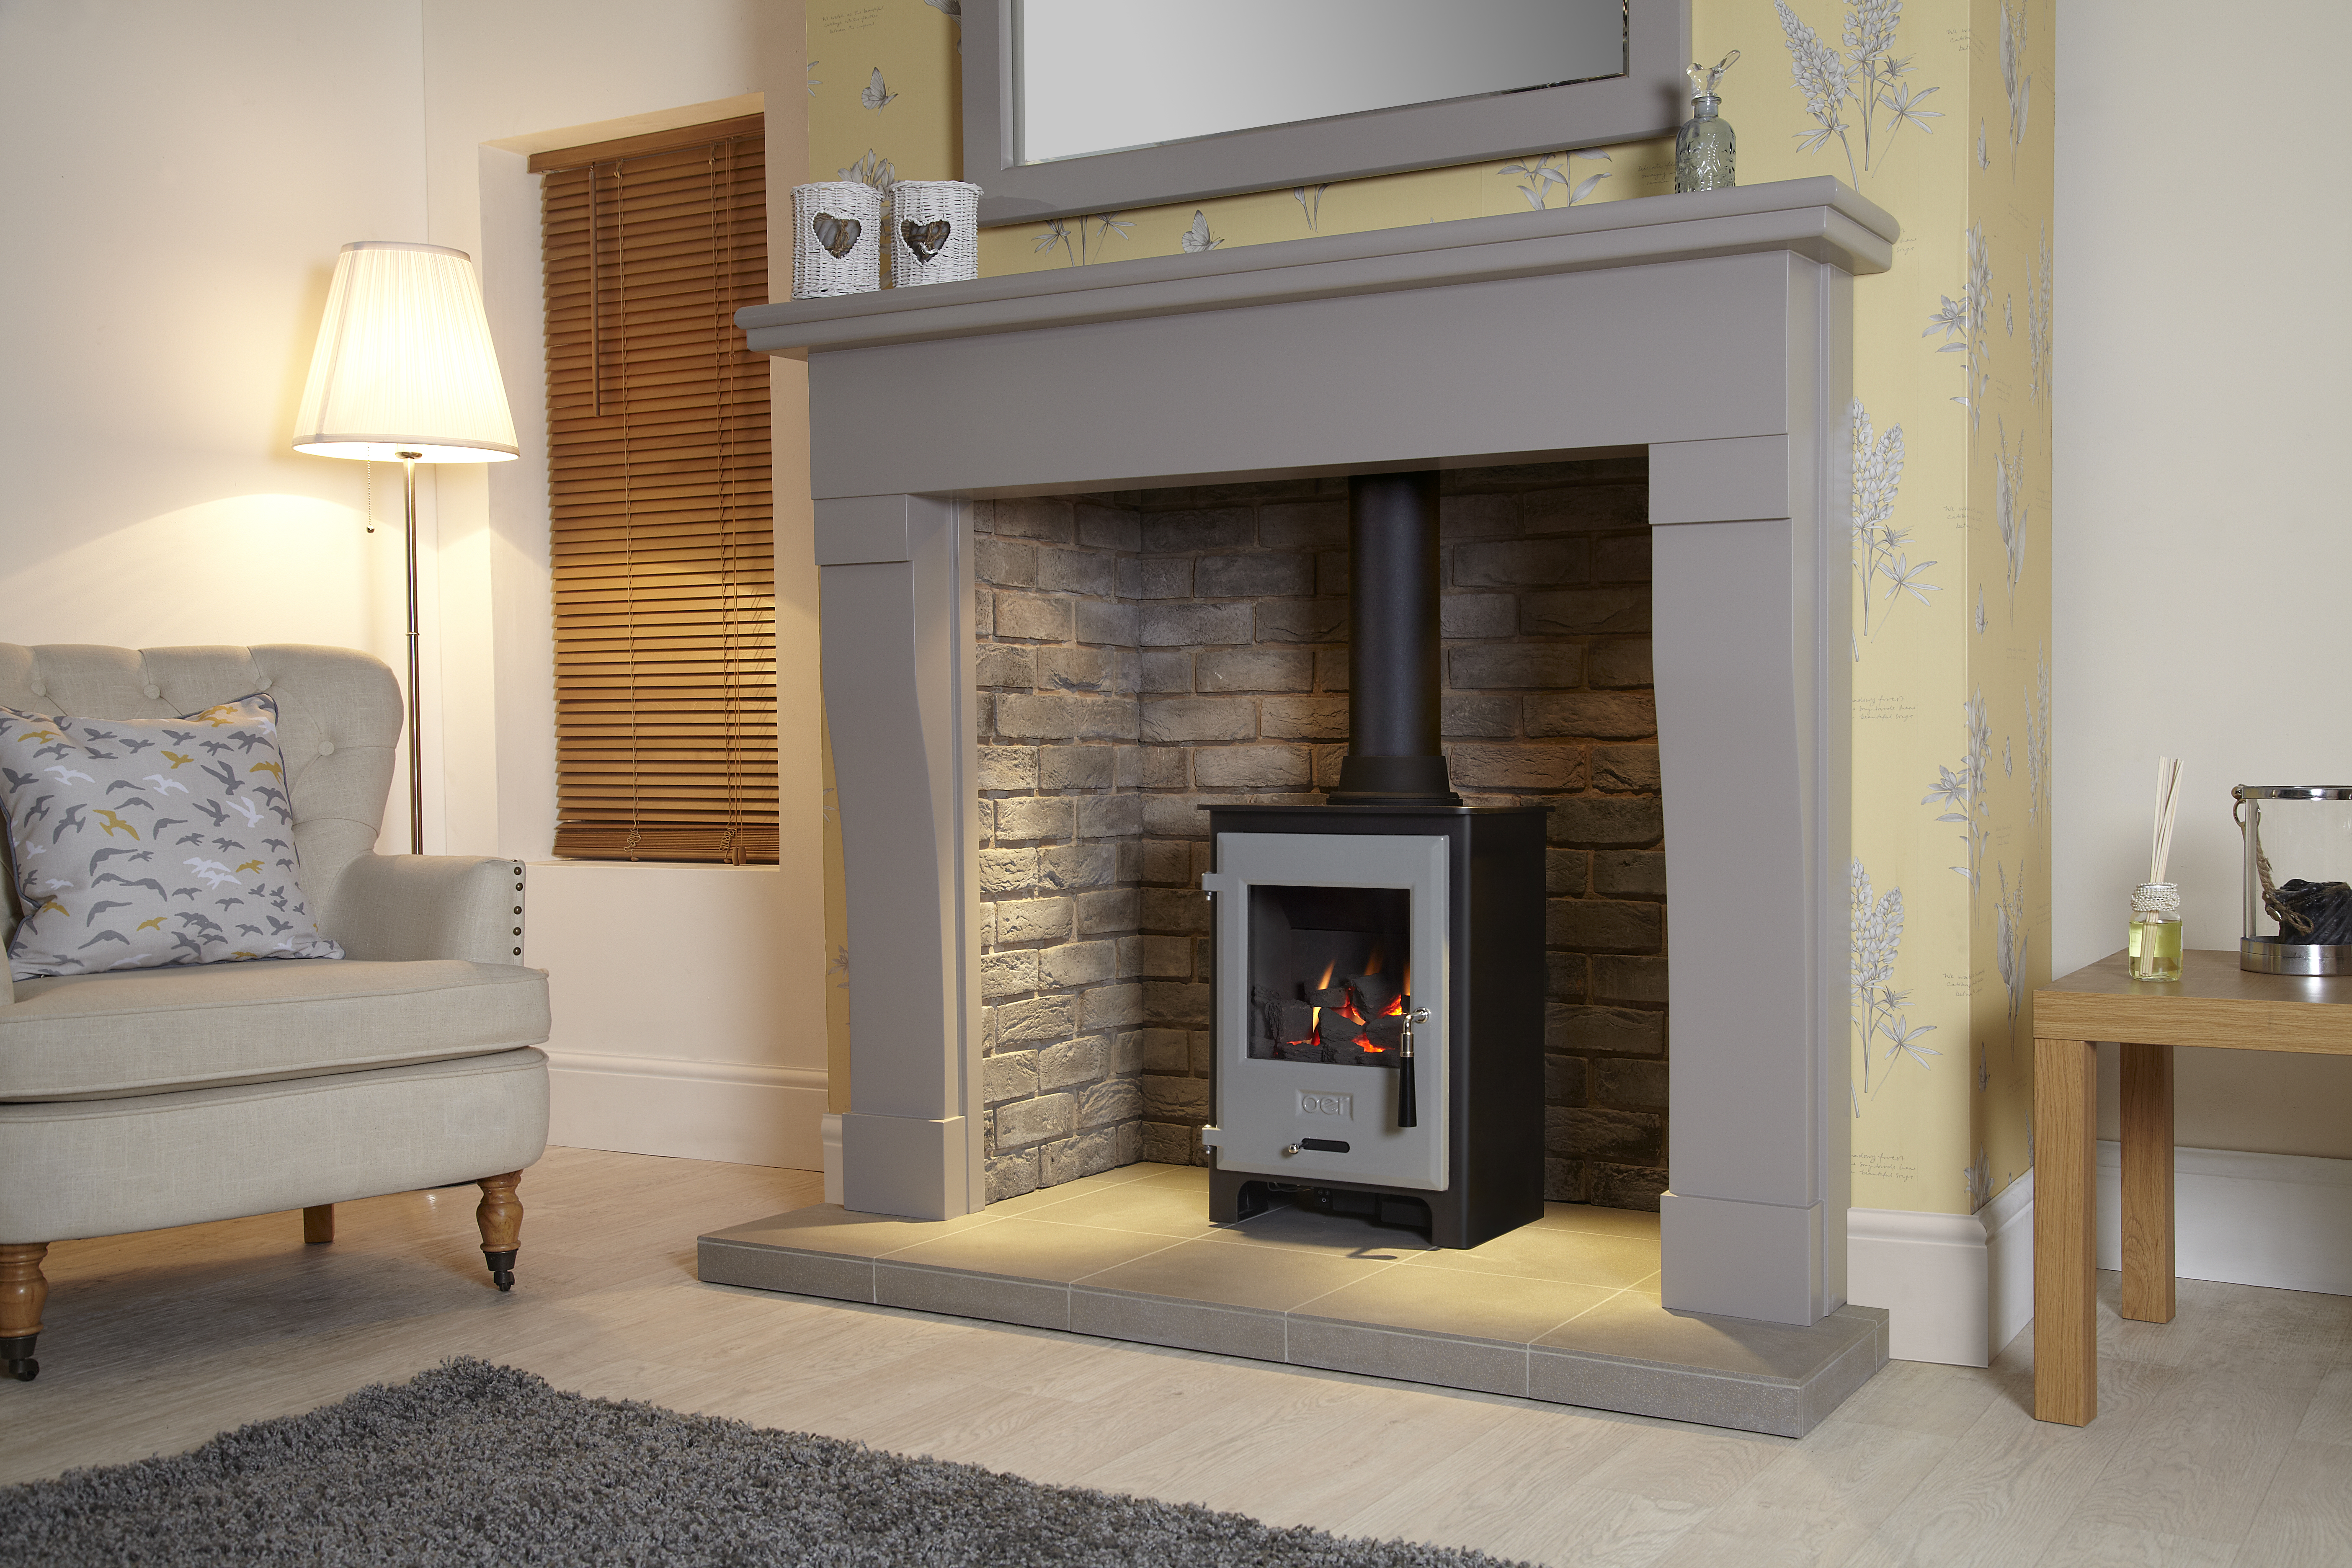 heat fireplace original the valor radiant stove gas slide